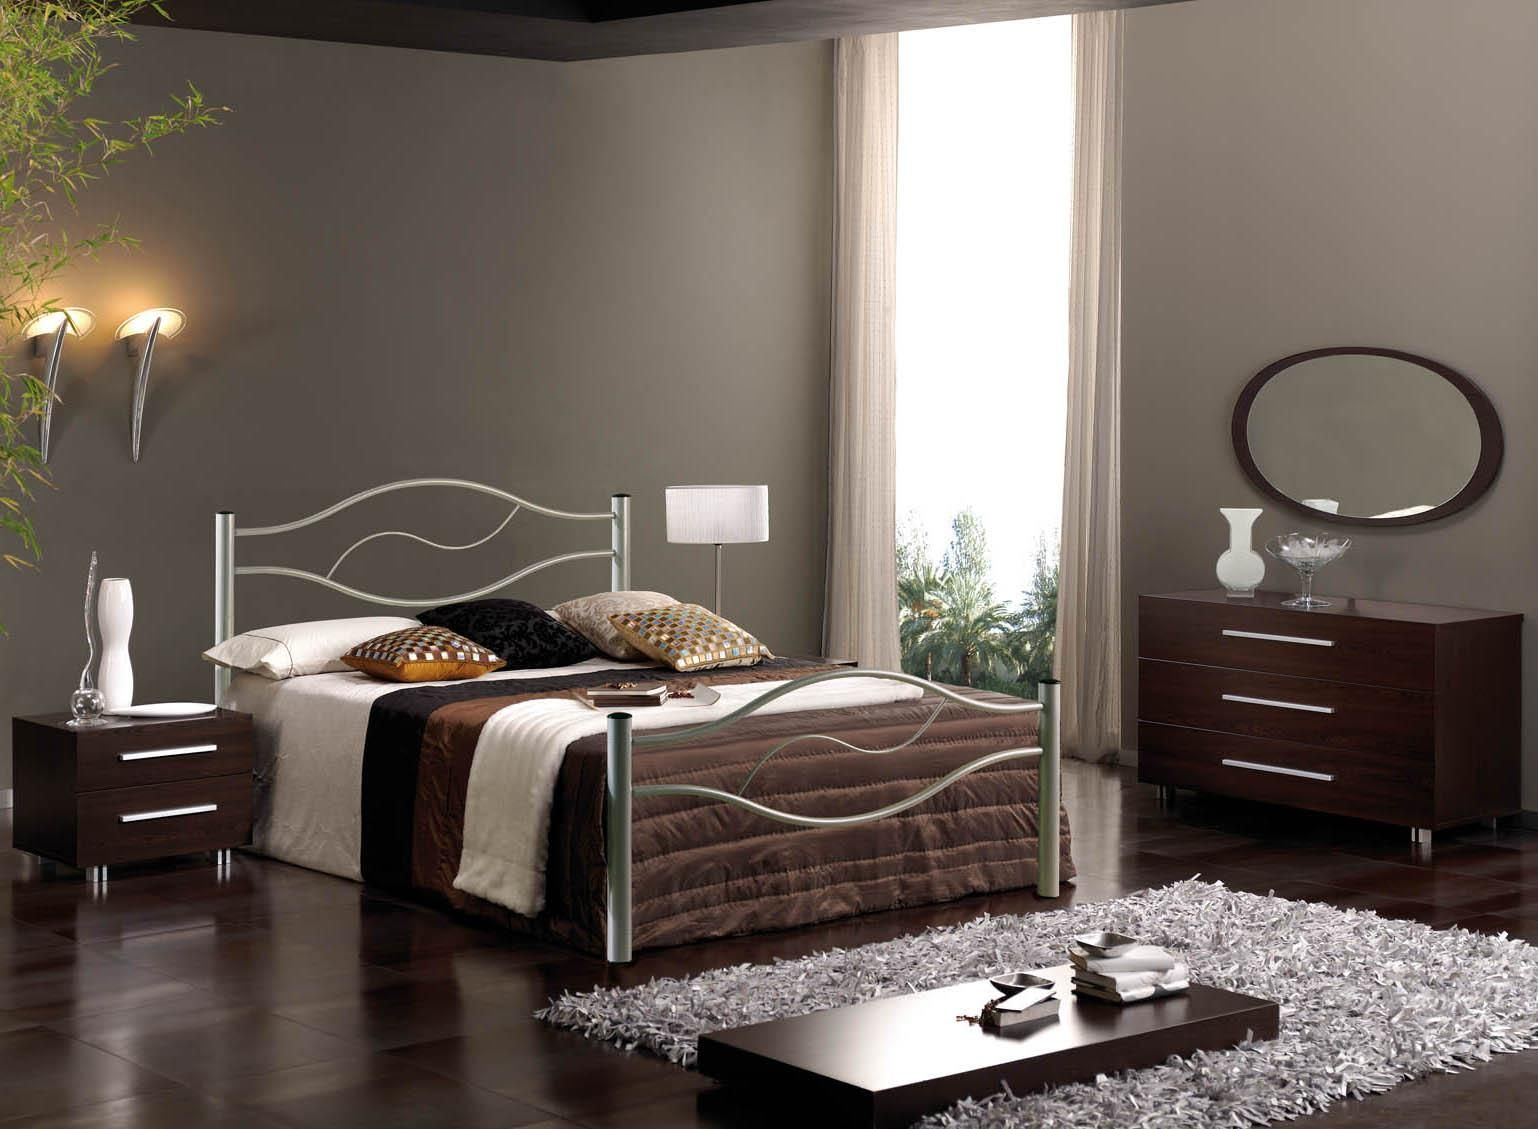 Amazing Metal Bed Design Feats Romantic Bedroom